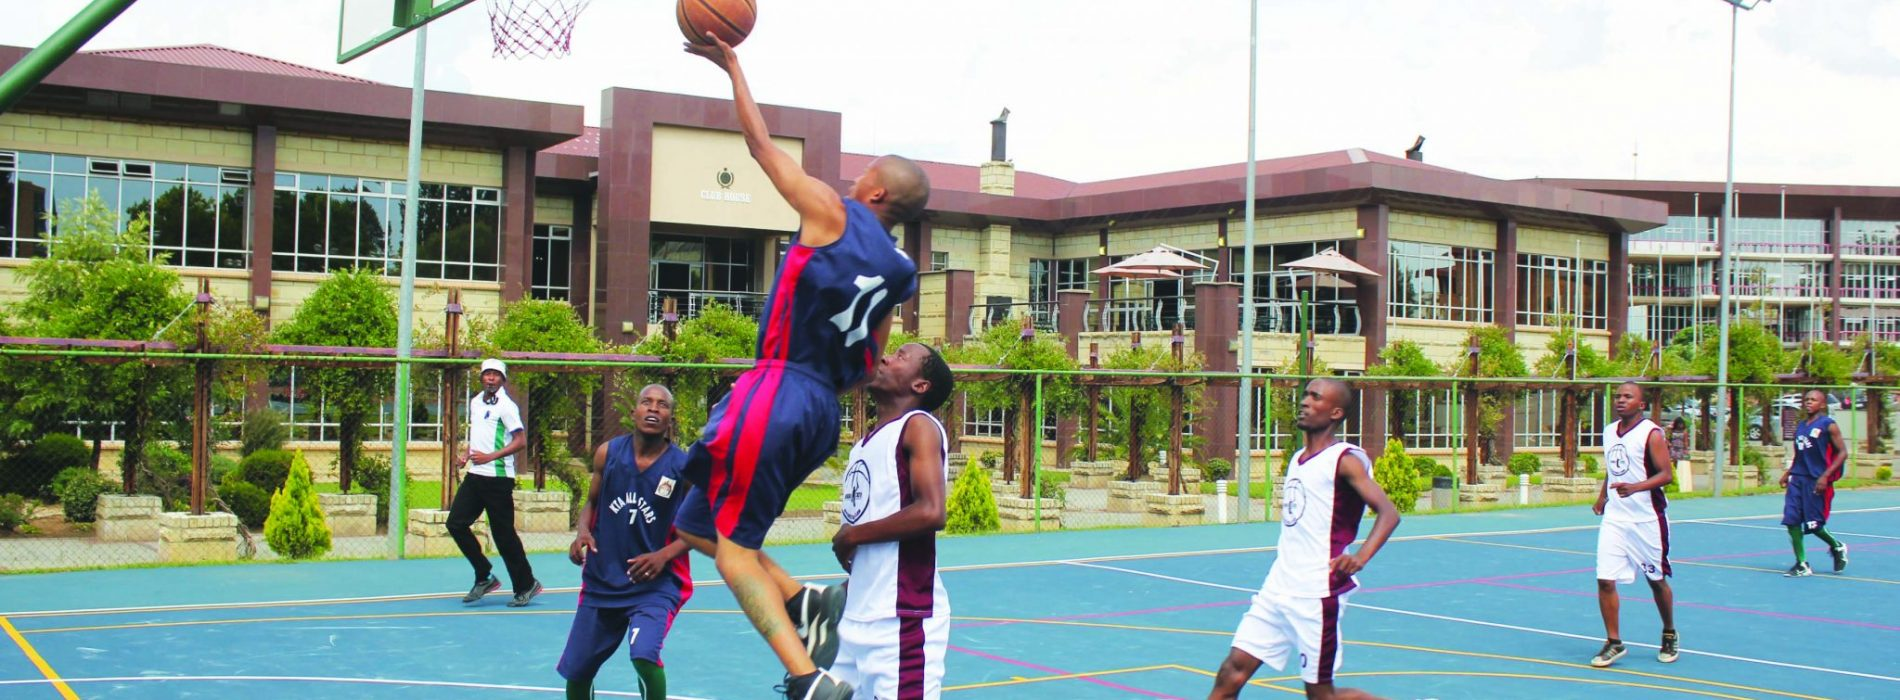 Clubs to battle it out at Summer Slam Charity tourney